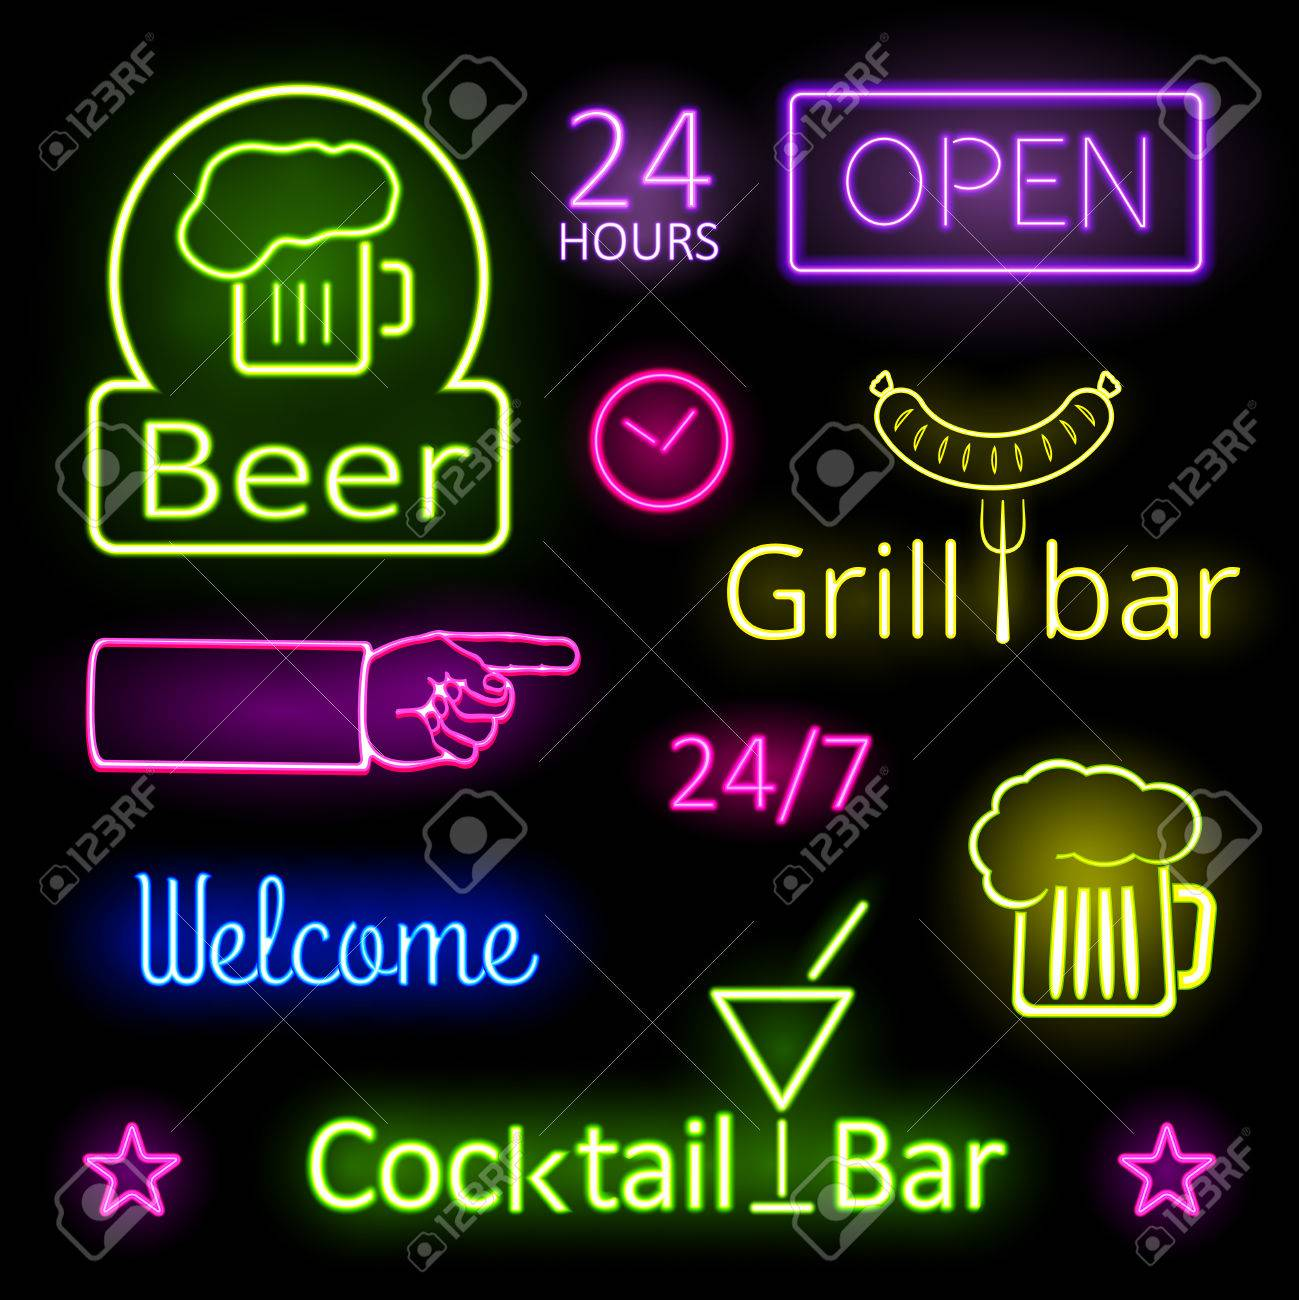 Glowing neon lights bar signs on black background glowing neon lights bar signs on black background 33995205 mozeypictures Gallery